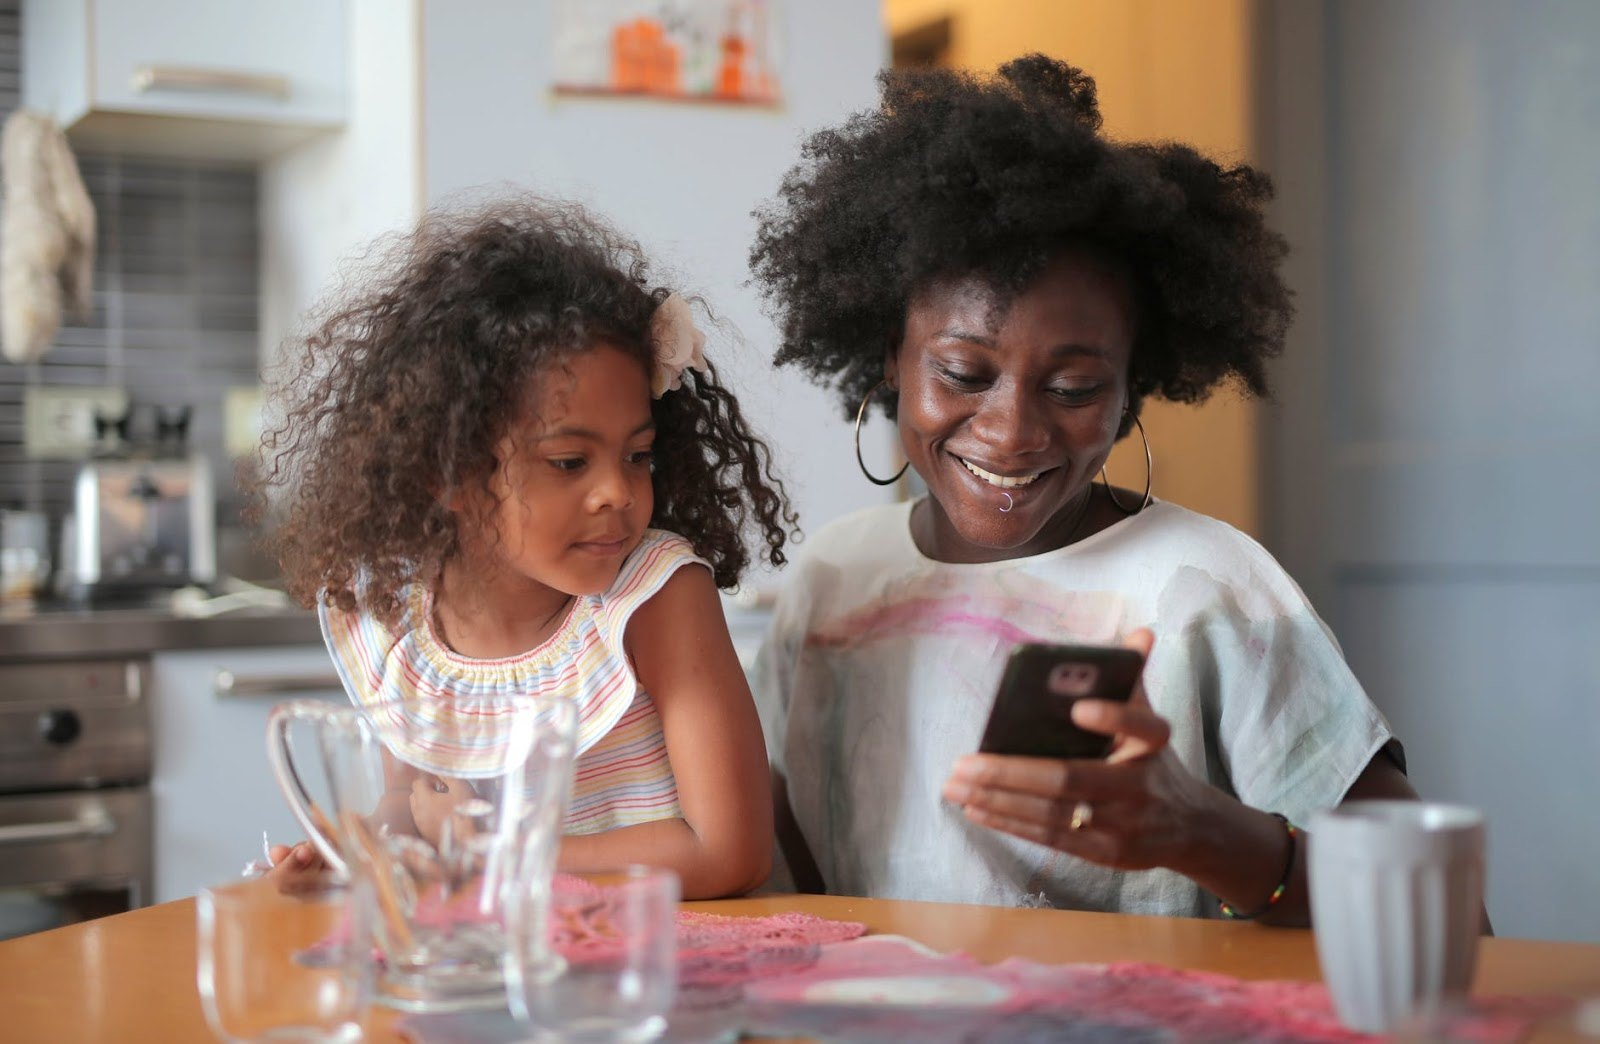 The Top Smartphone Apps for Moms